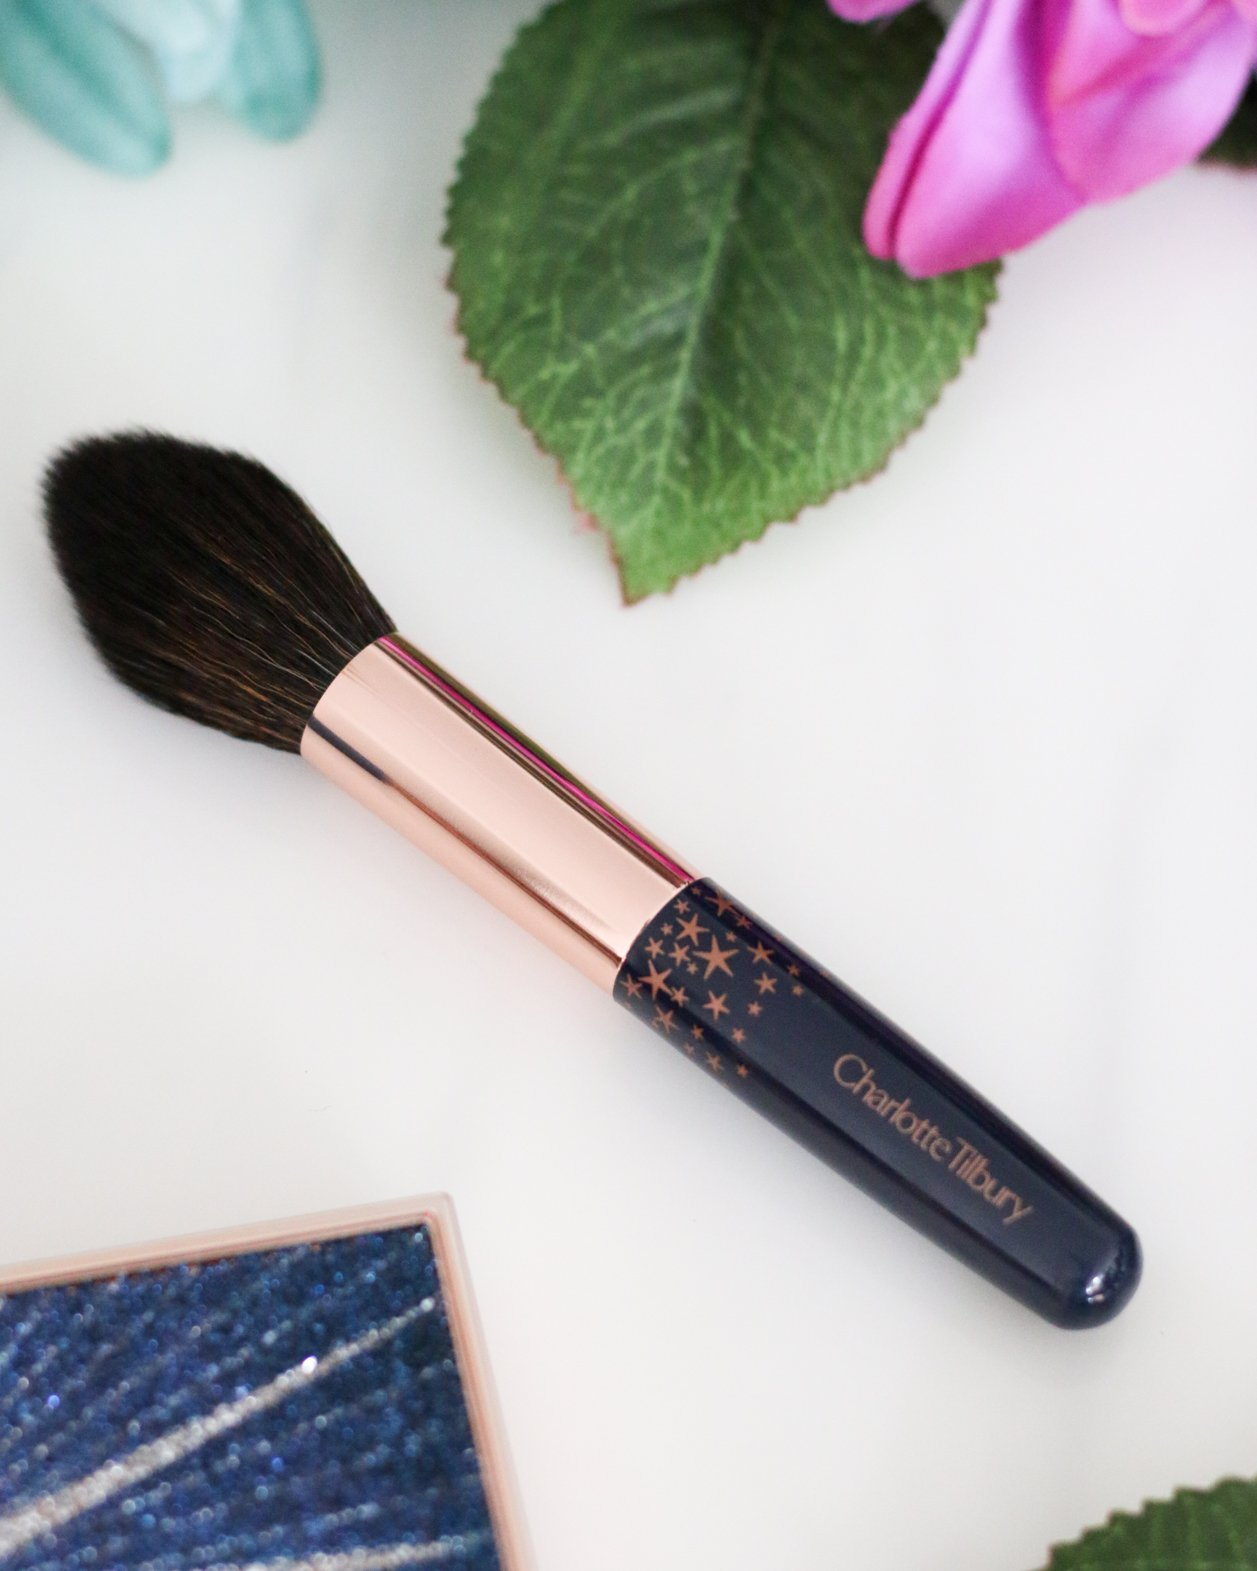 Charlotte Tilbury Powder & Sculpt Brush